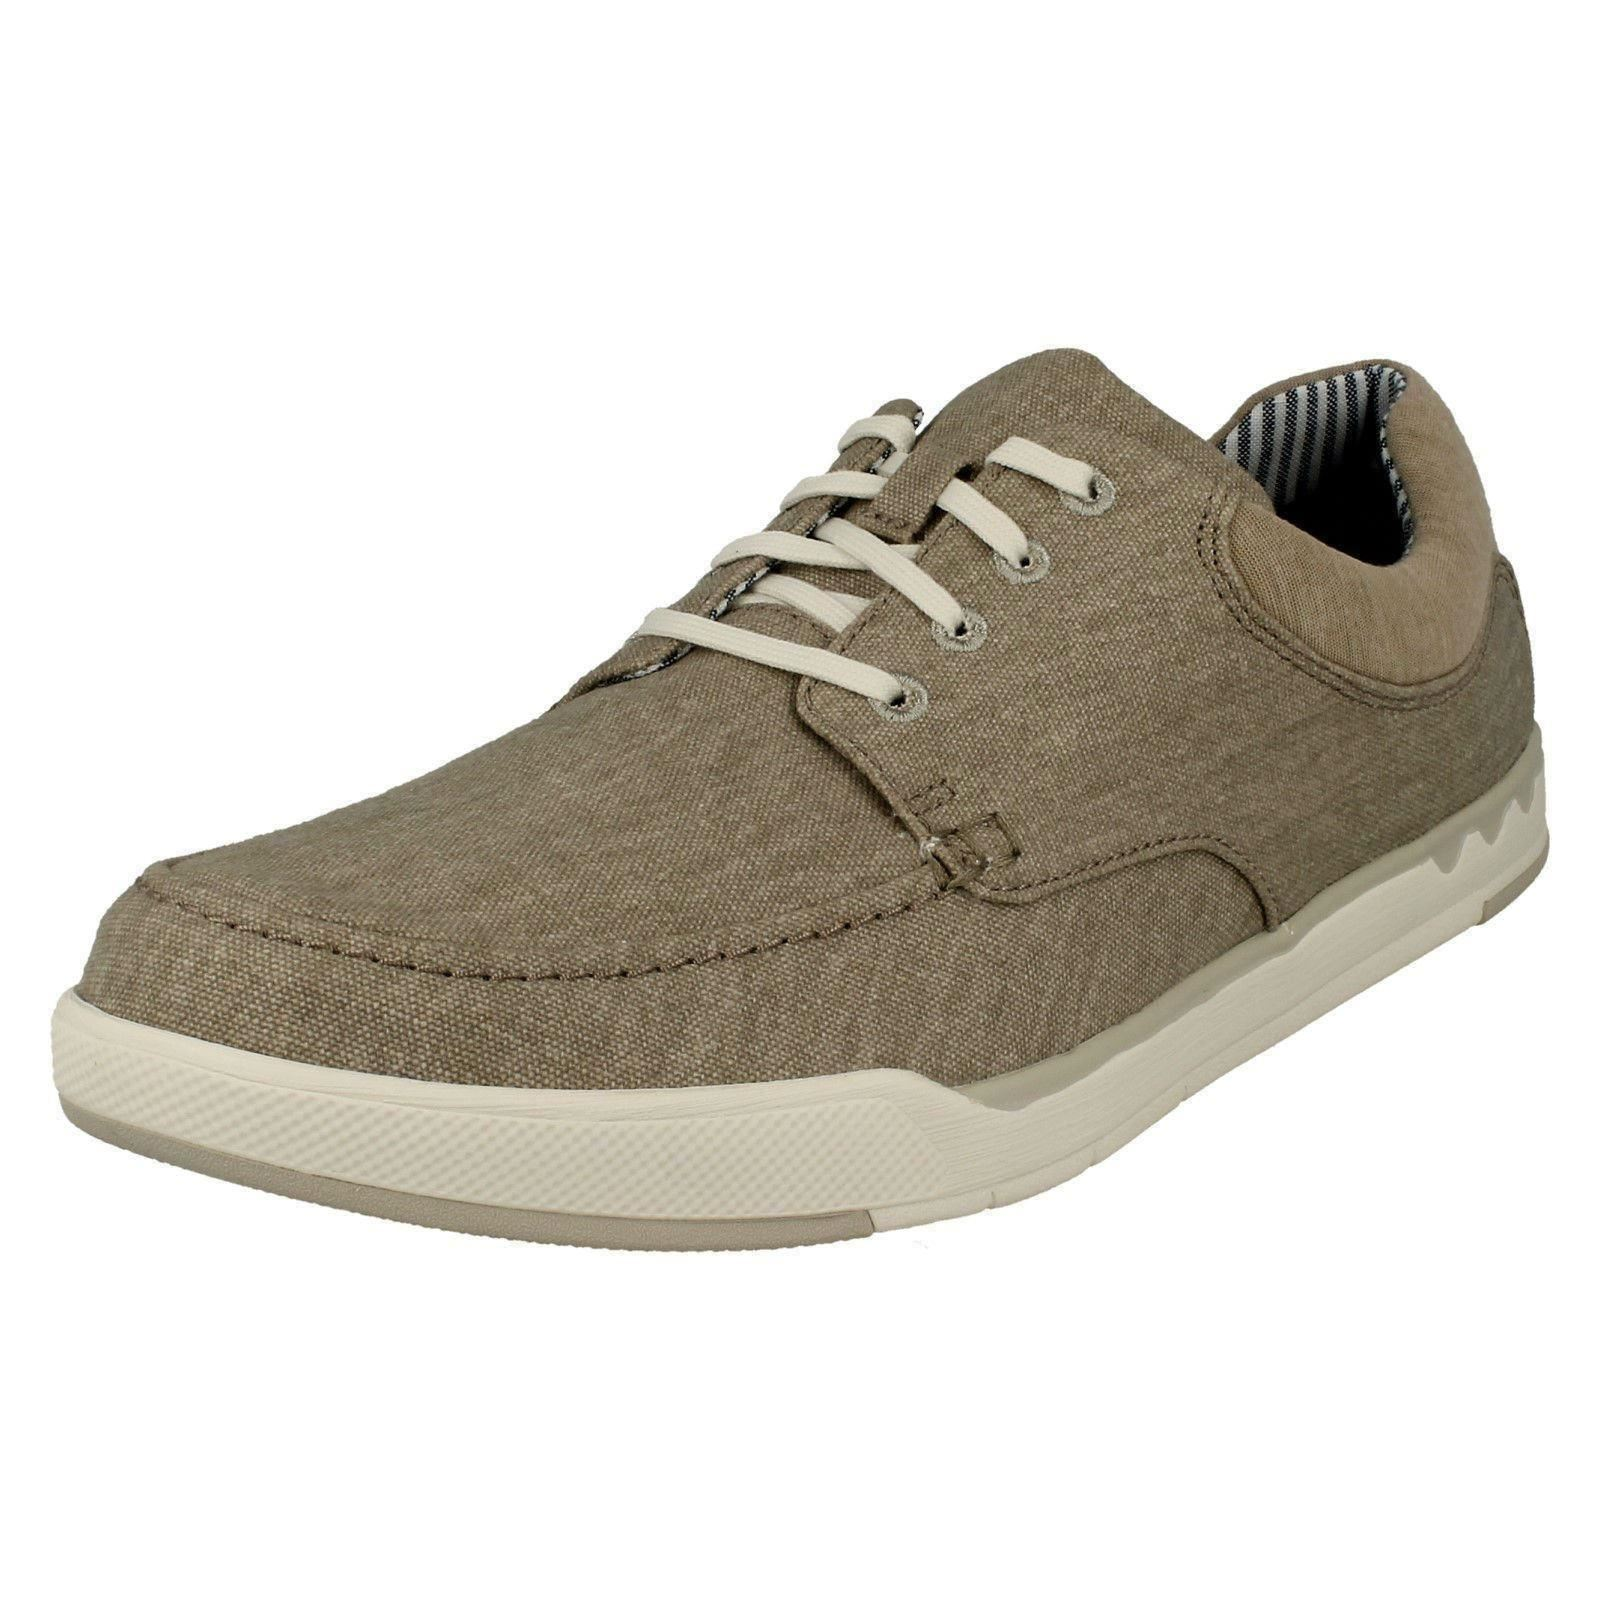 Men's Cloud Steppers by Shoes Lace Up Casual Canvas Shoes by Style - Step Isle Lace 520c4e